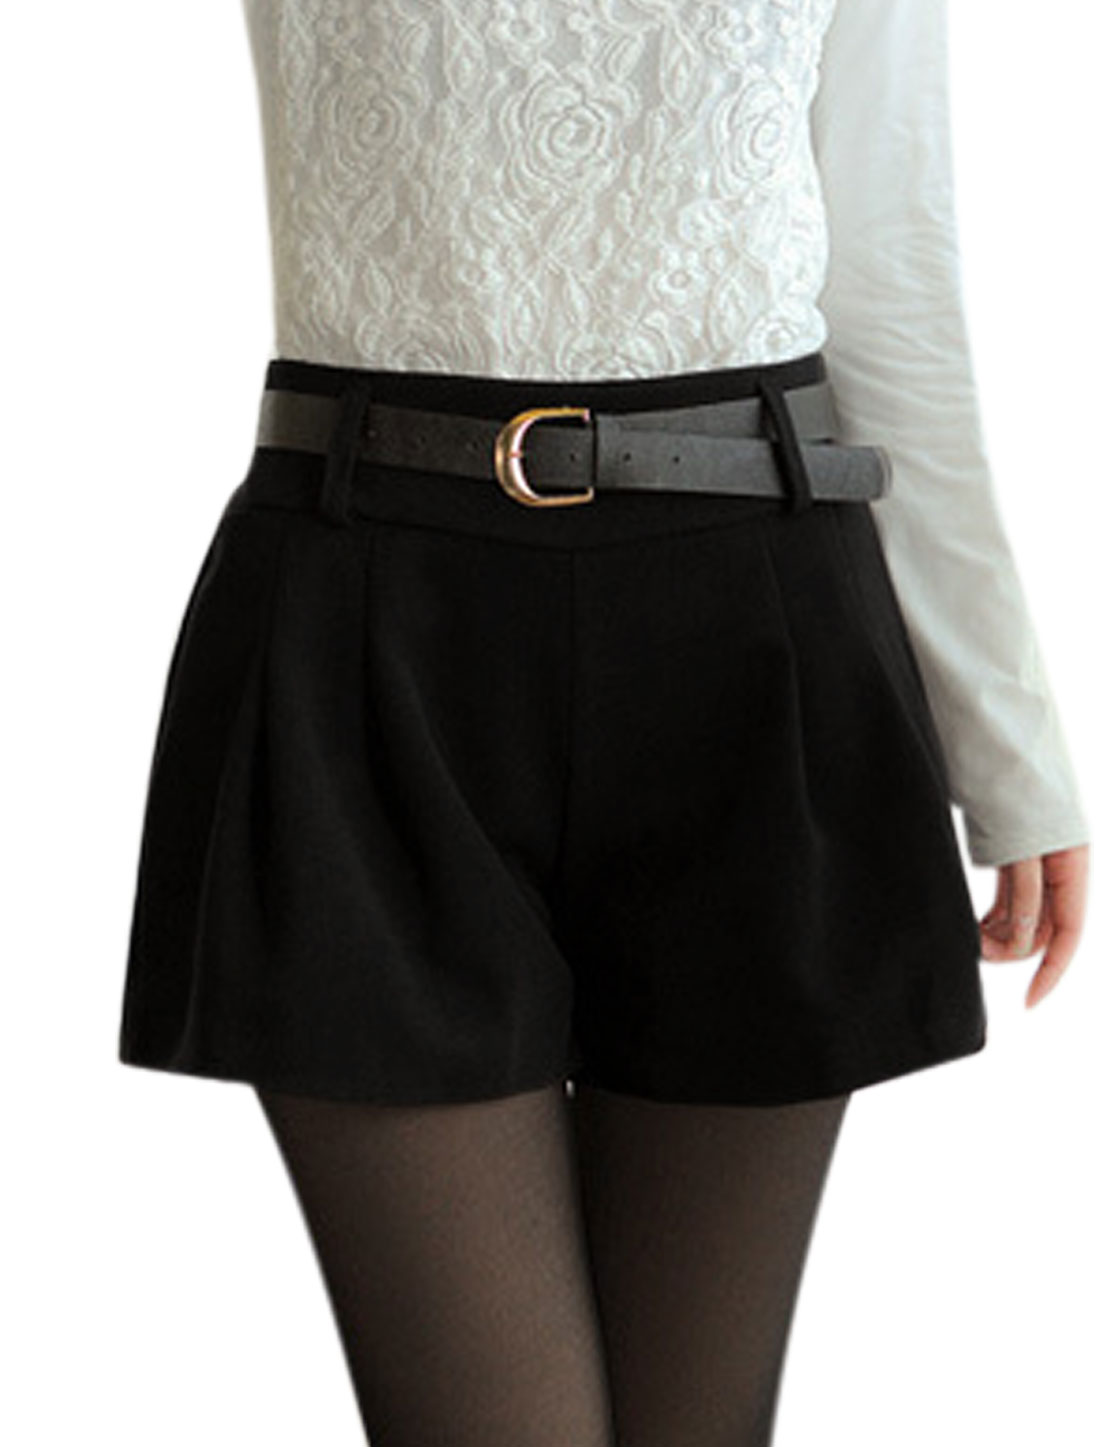 Women Elastic Waist Design Chic Worsted Shorts w Belt Black S